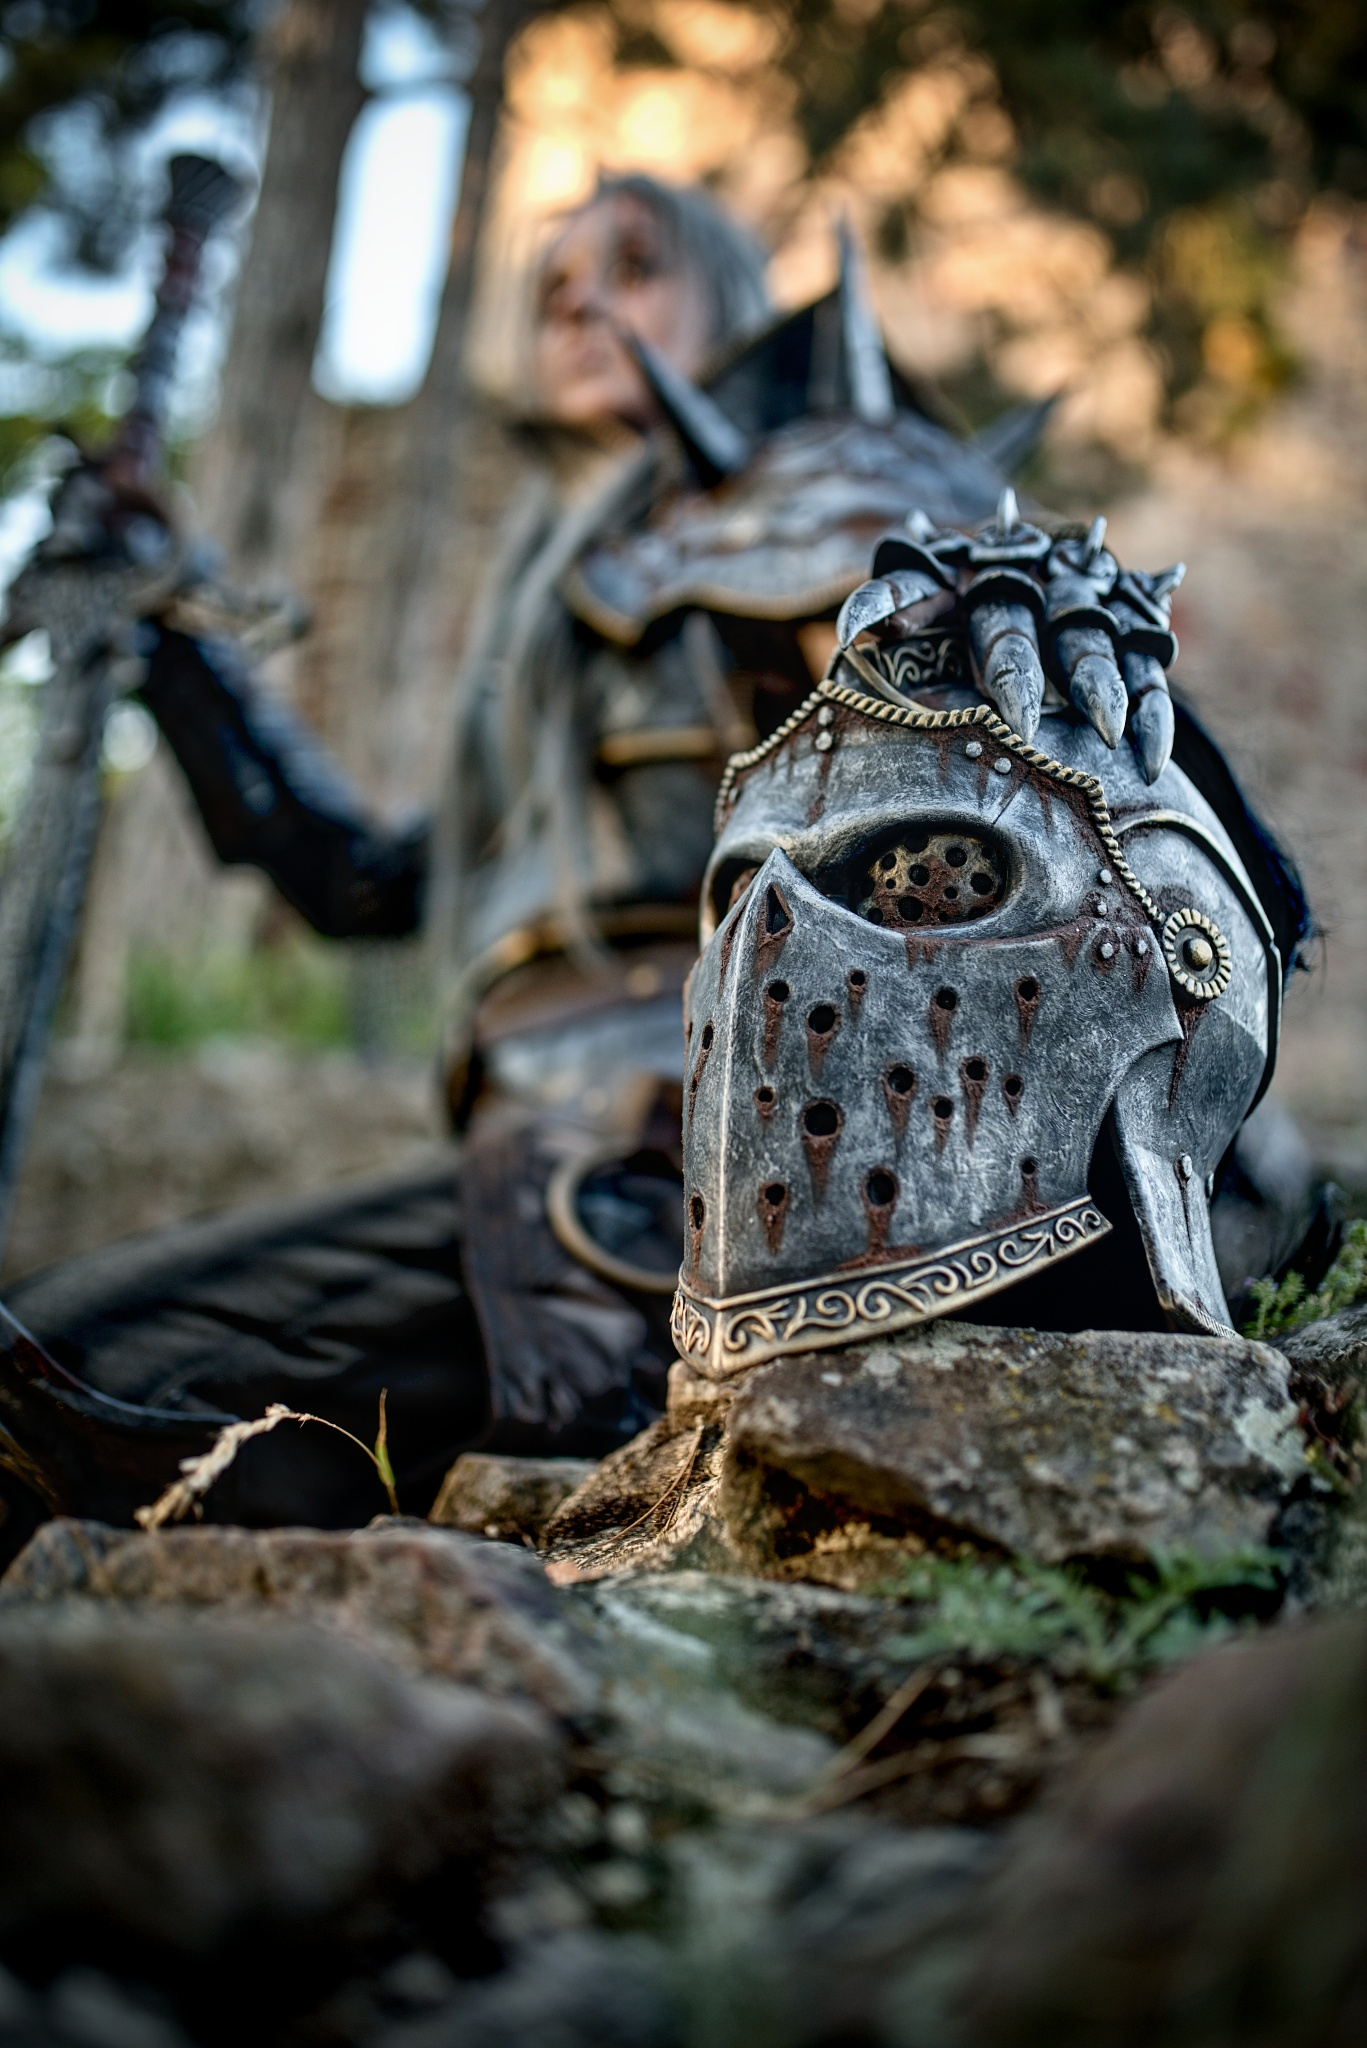 How to Photograph a Cosplay - a knight